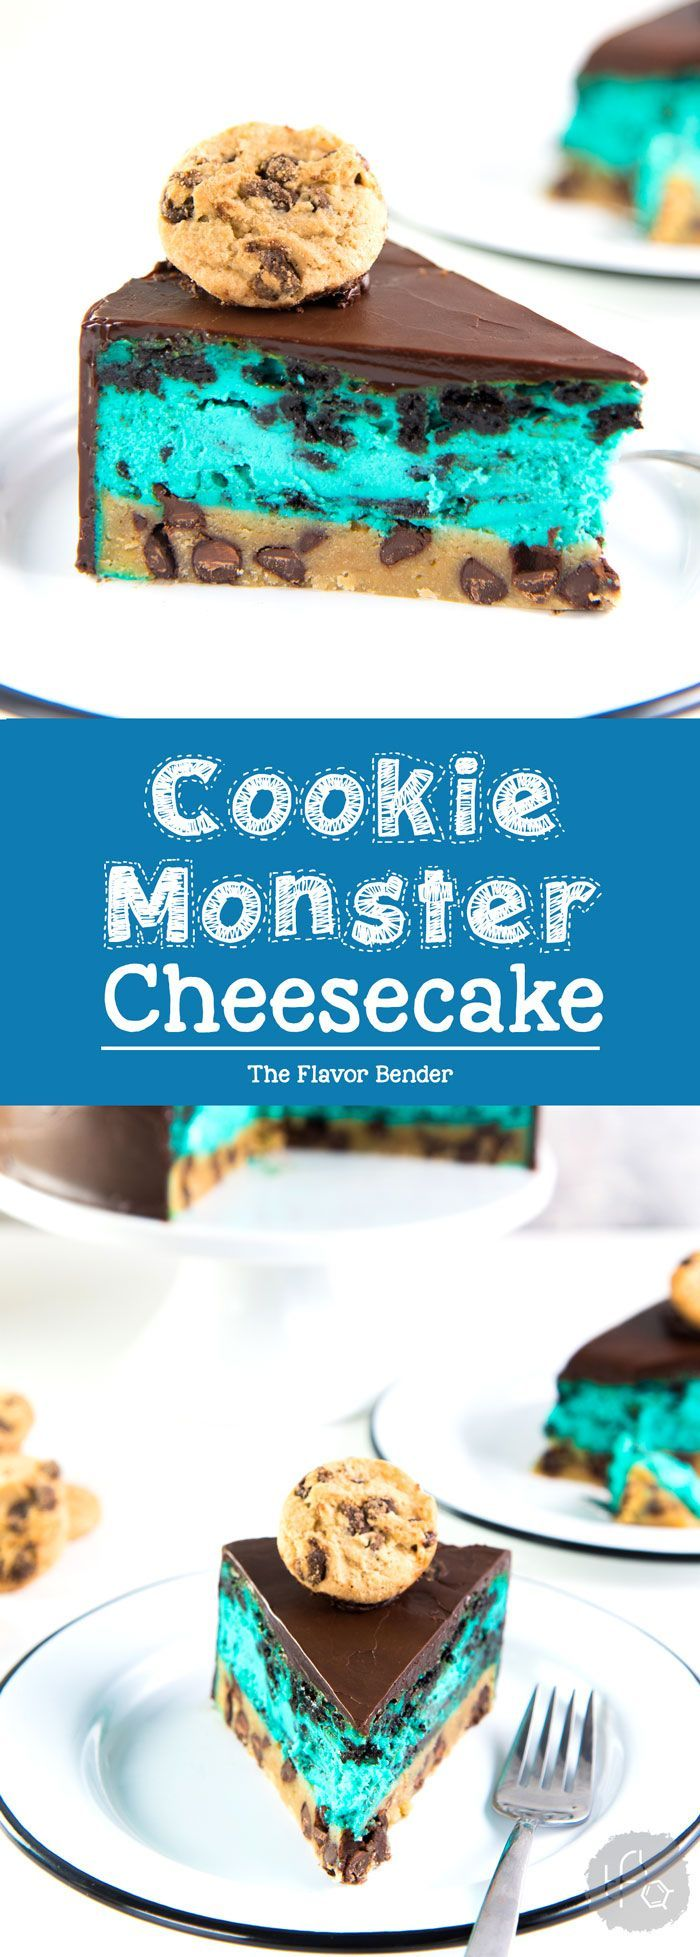 Cookie Monster Cheesecake - A fudgy chewy chocolate chip cookie blondie, topped with a creamy cookie and cream cheesecake loaded with Oreos and coated with a layer of chocolate ganache. Perfect dessert for cookie lovers. From the Secret Layer Cakes cookbo